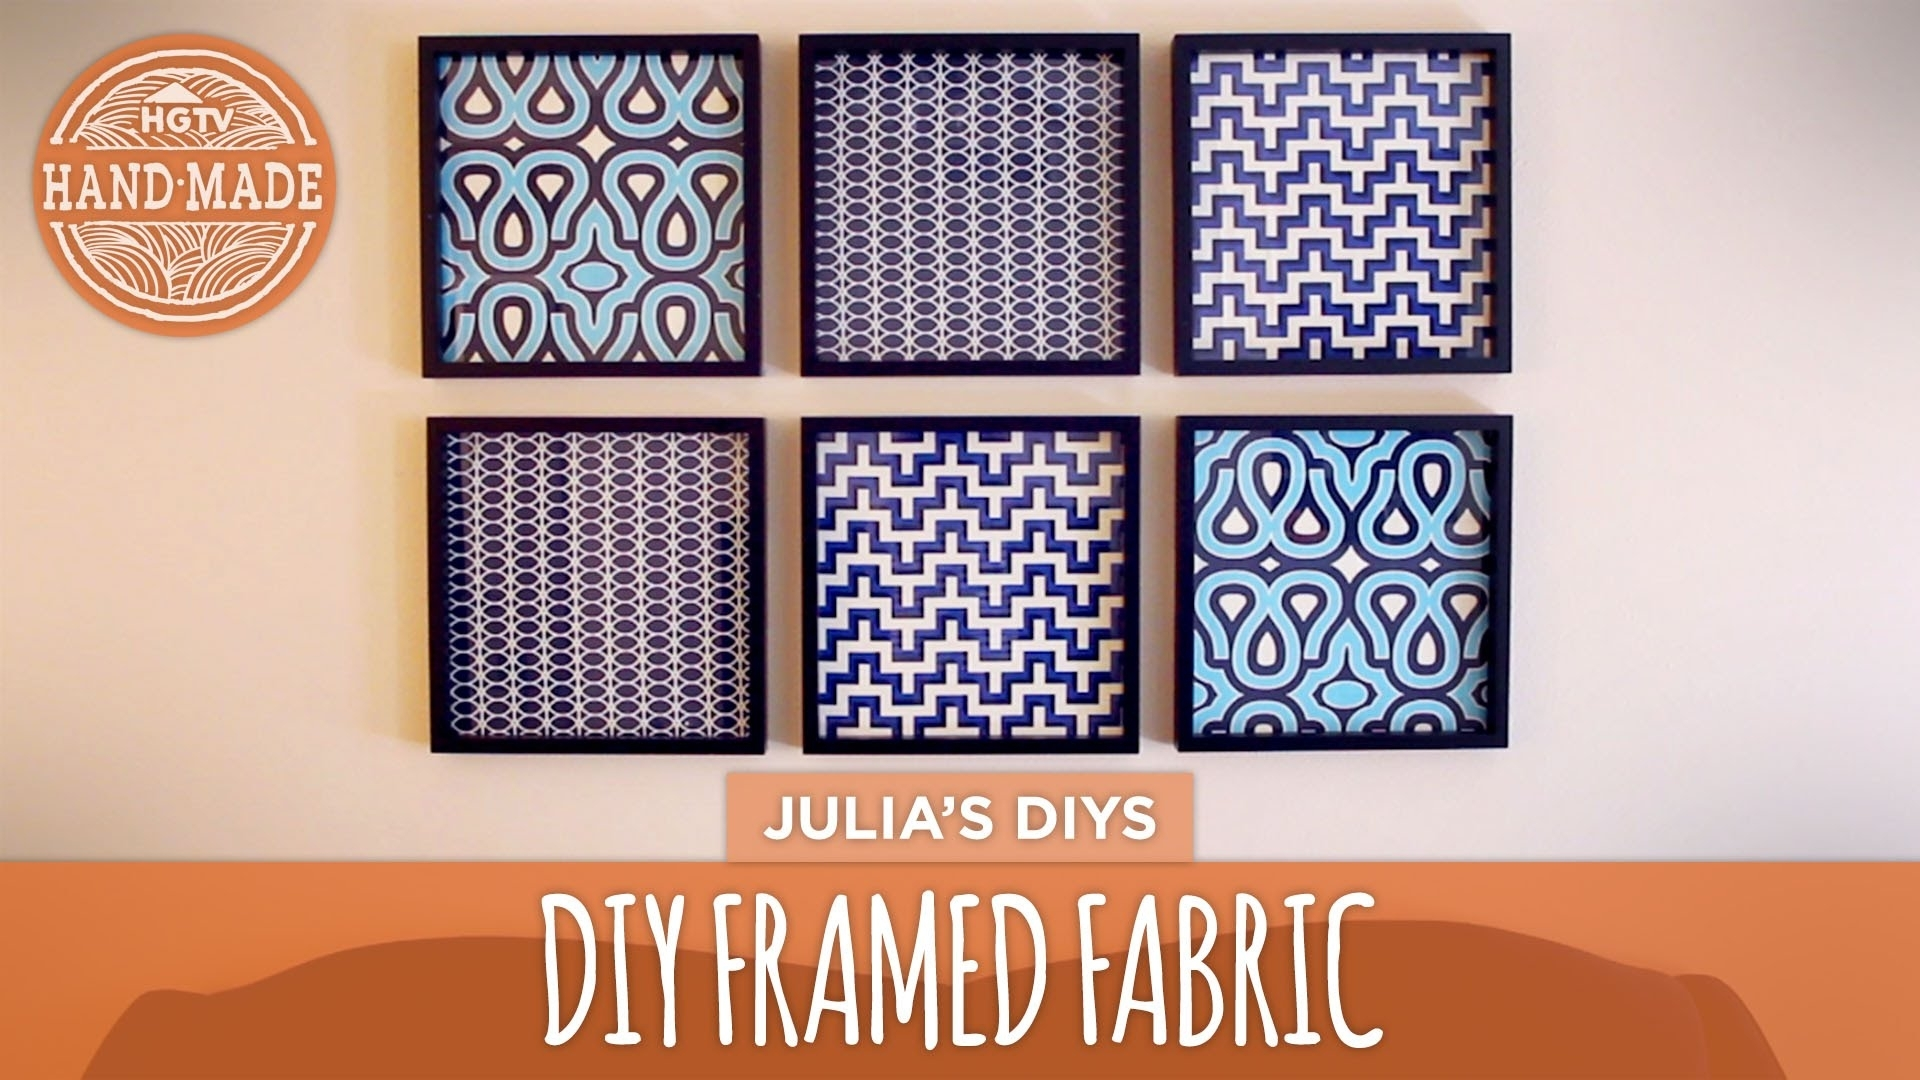 Diy Framed Fabric Gallery Wall – Hgtv Handmade – Youtube For Most Recently Released Fabric Covered Frames Wall Art (View 4 of 15)